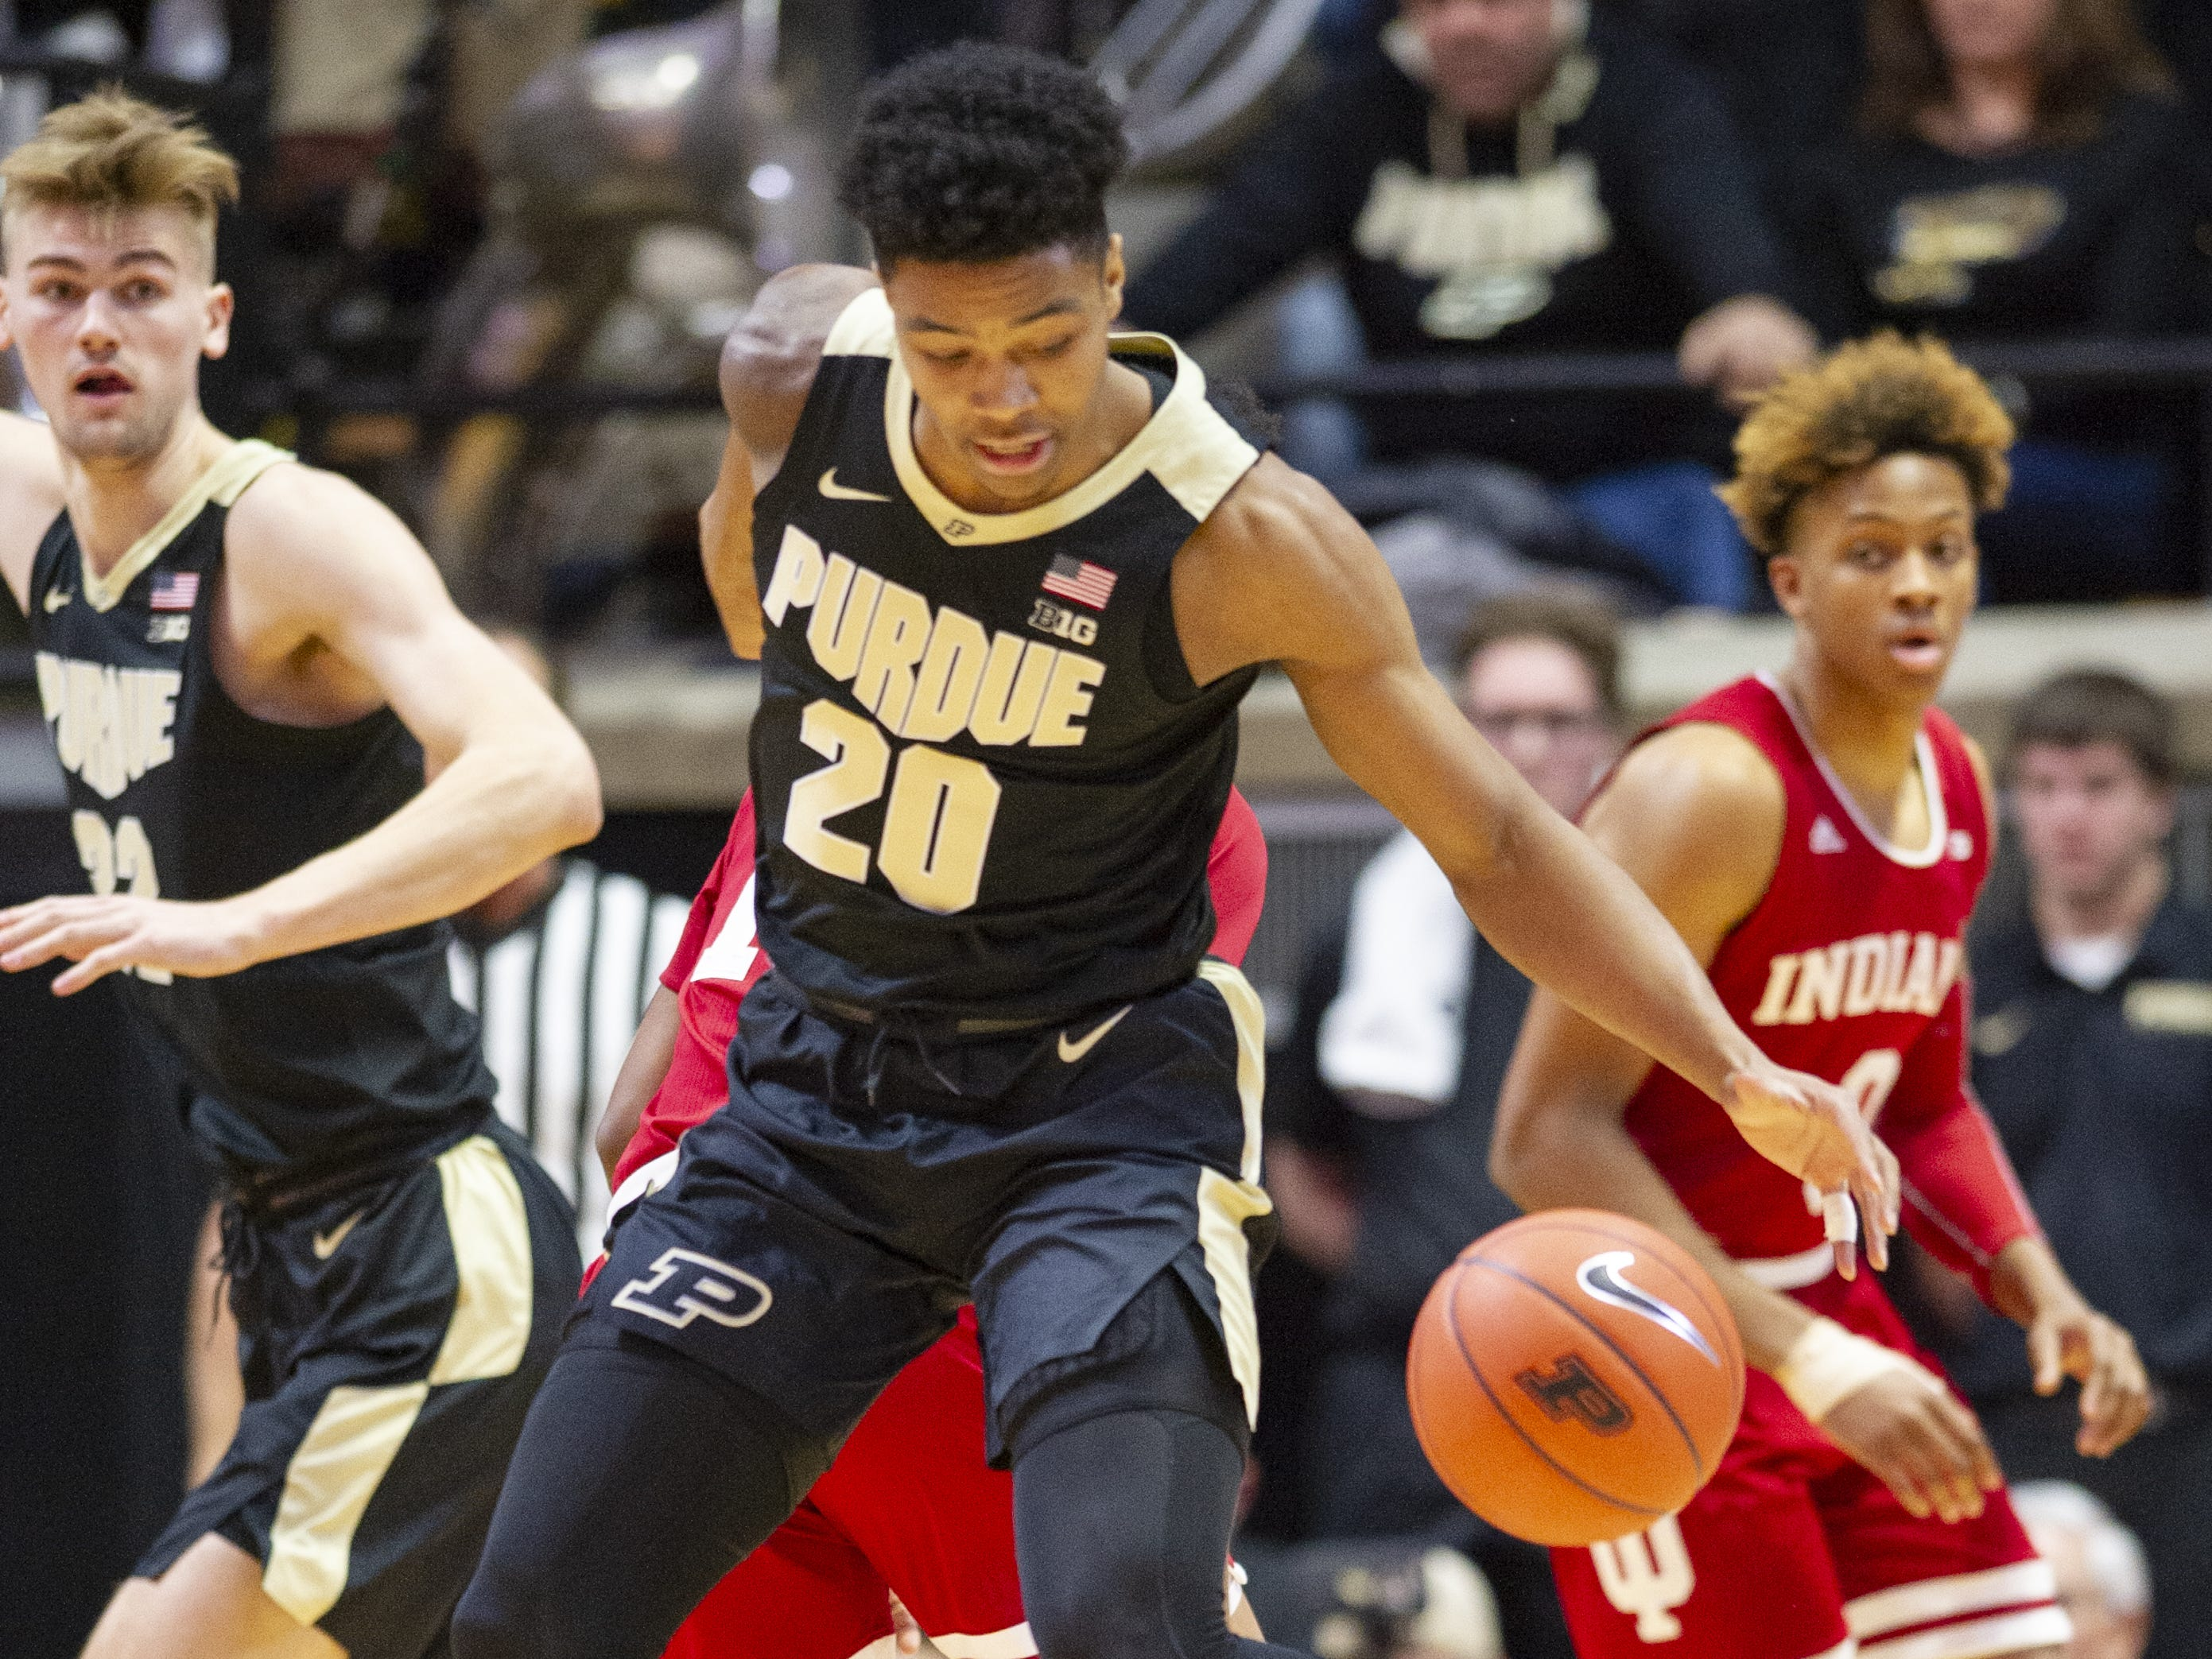 Purdue Boilermakers guard Nojel Eastern (20) works to regain control of the ball during the first half against Indiana.